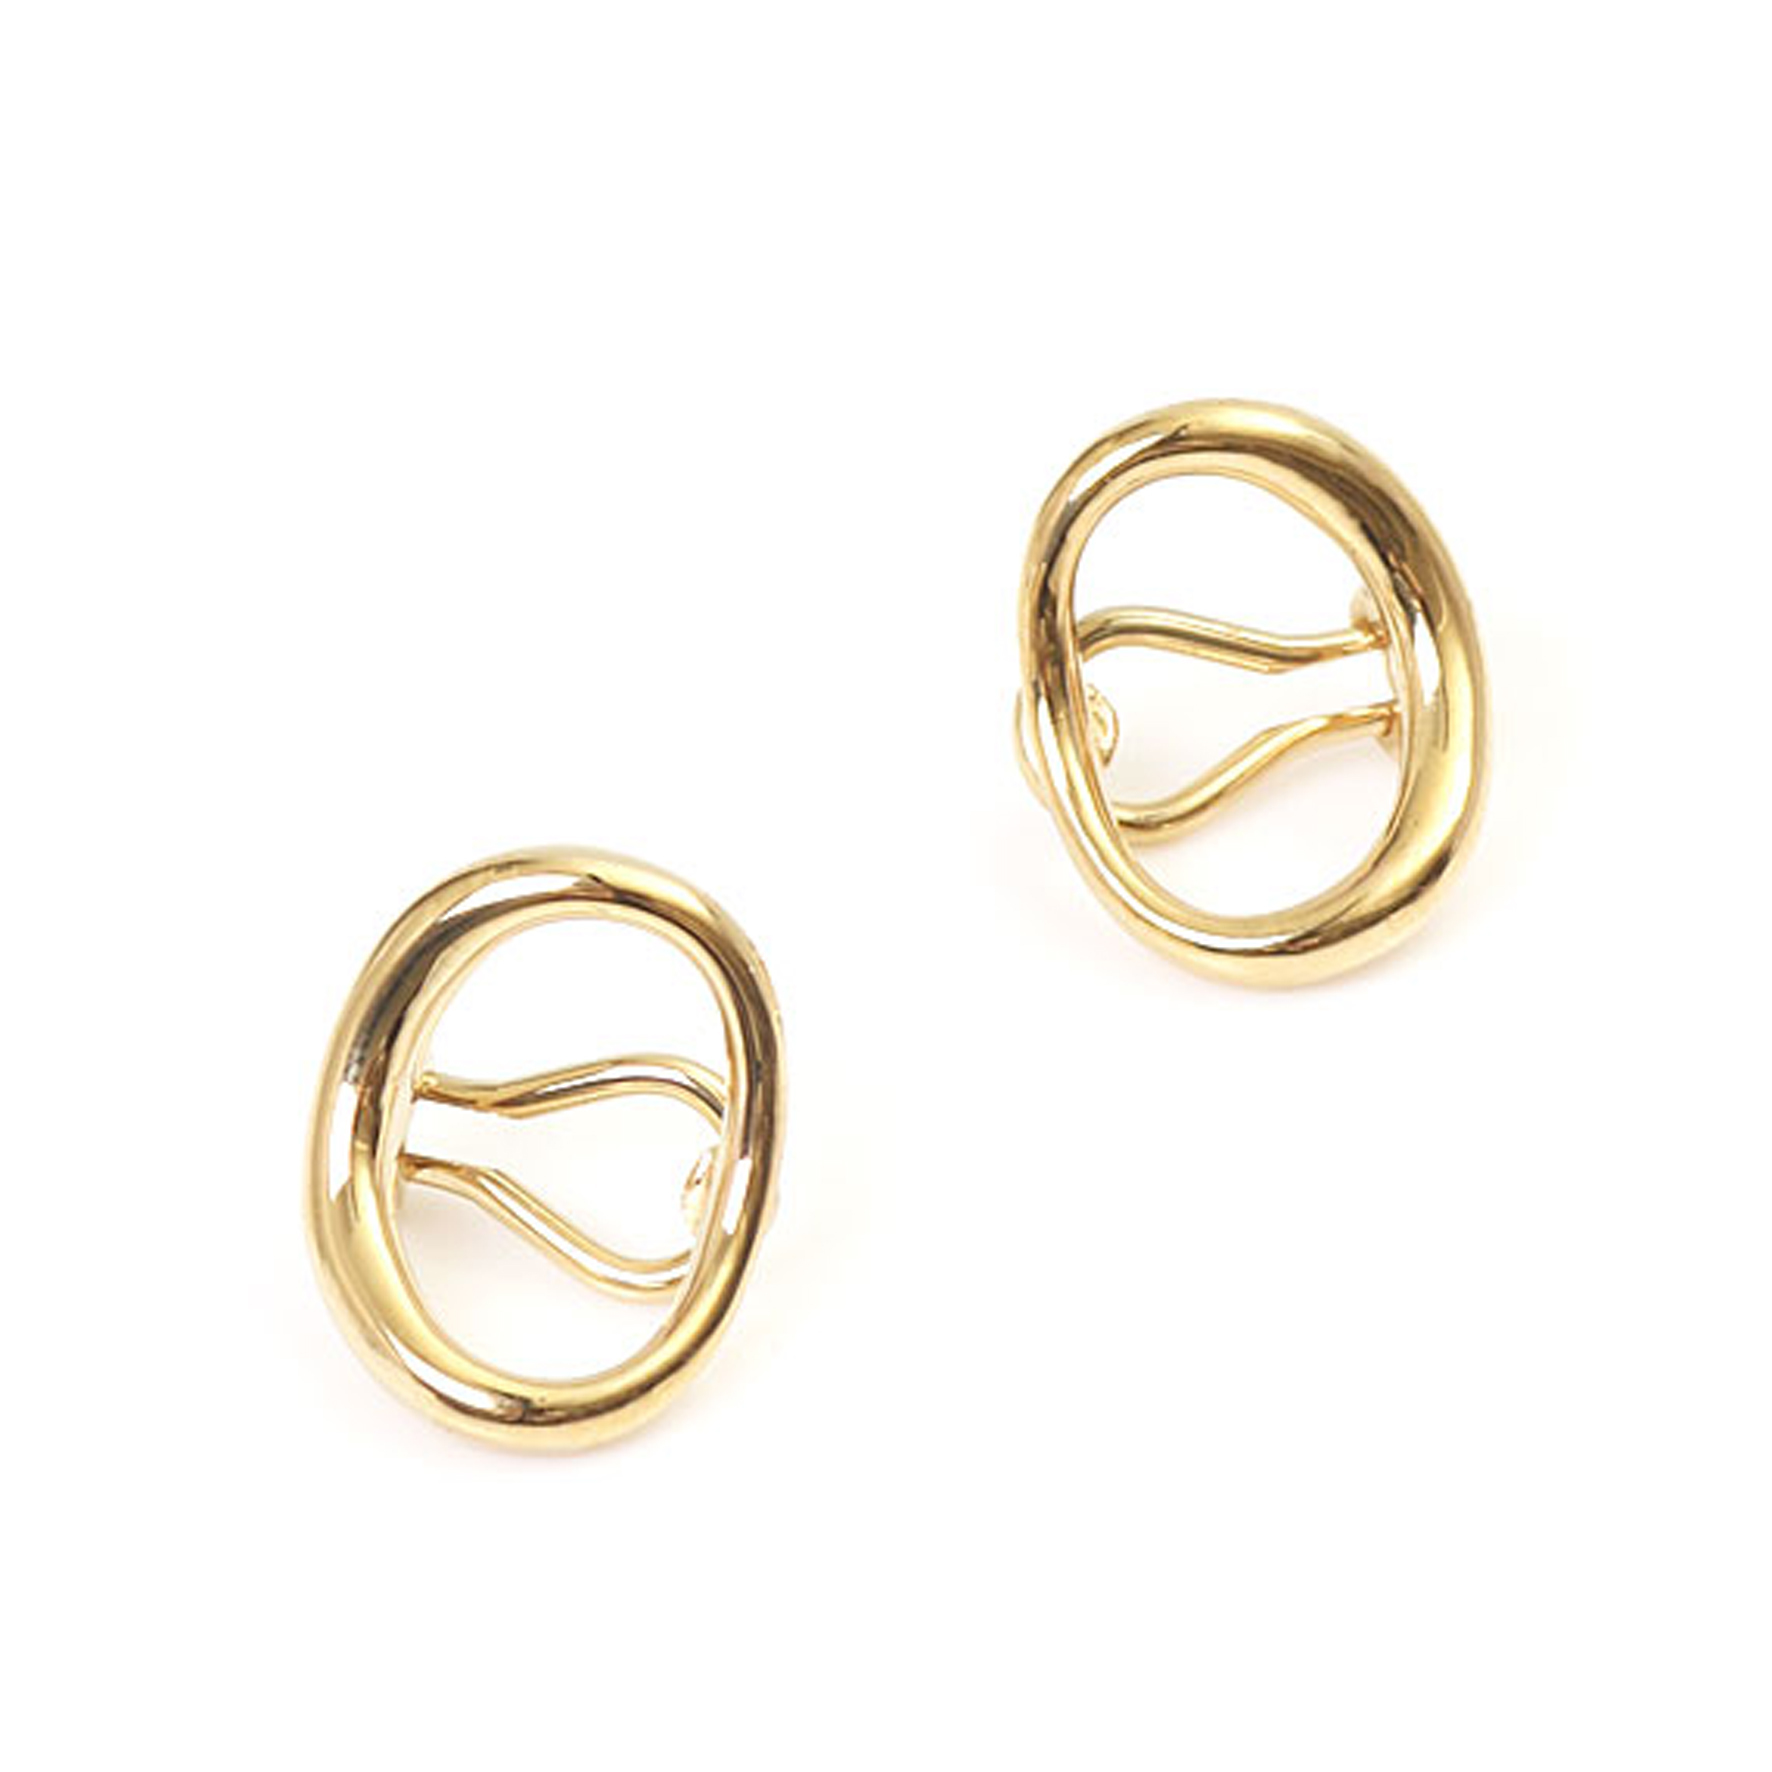 Charlotte Chesnais     Naho earrings   Yellow